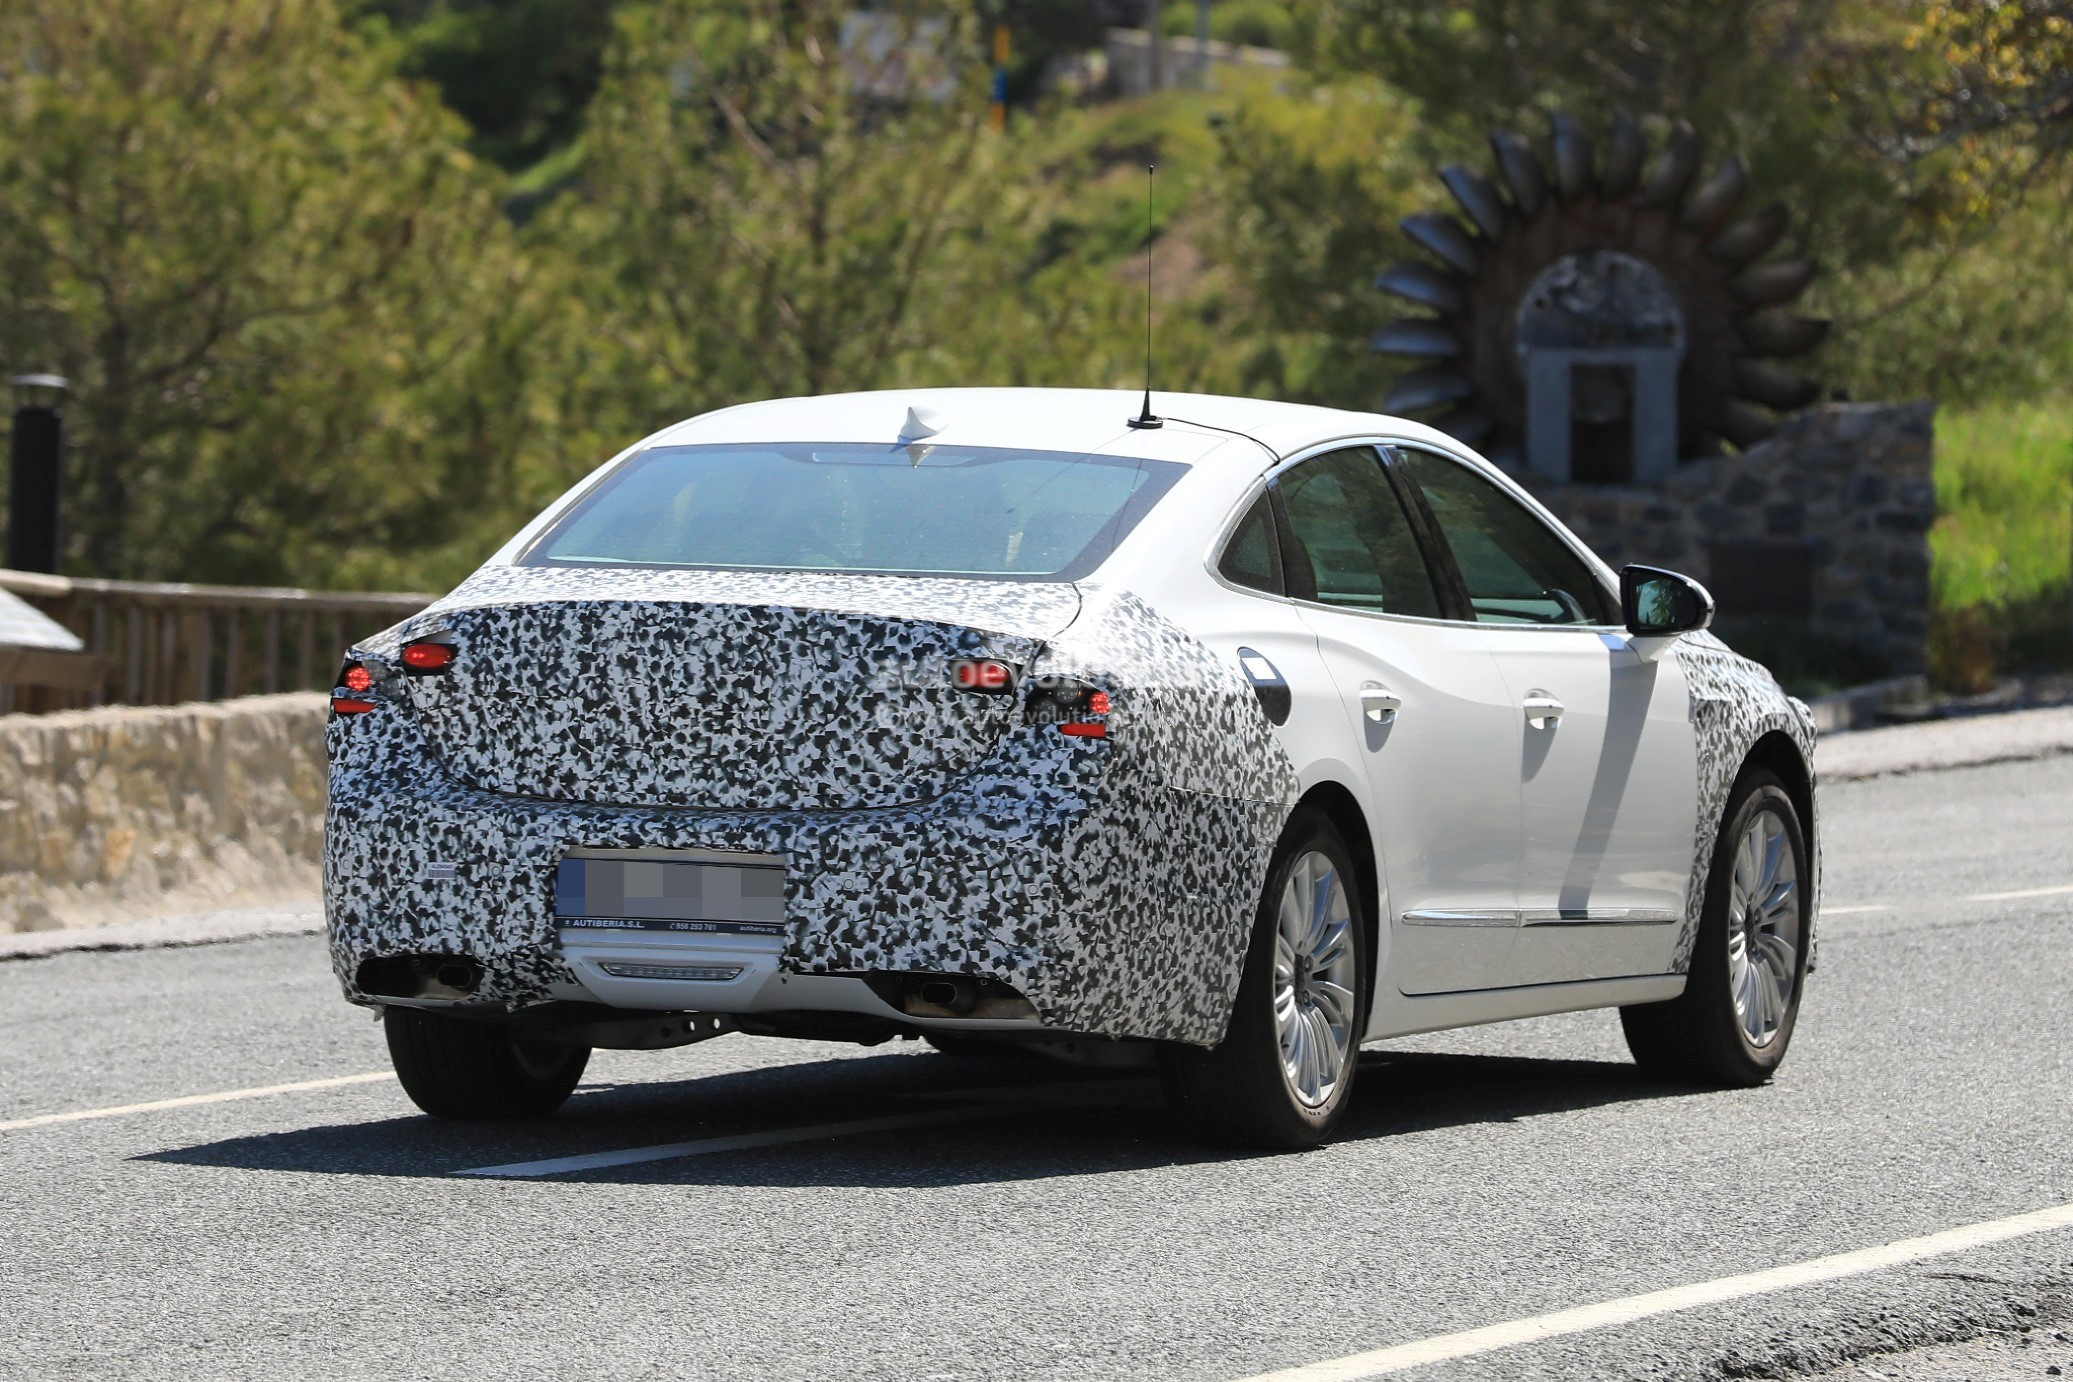 buick lacrosse lineup facelift spy canceled europe changes caught testing carscoops autoevolution spied minor styling china sb